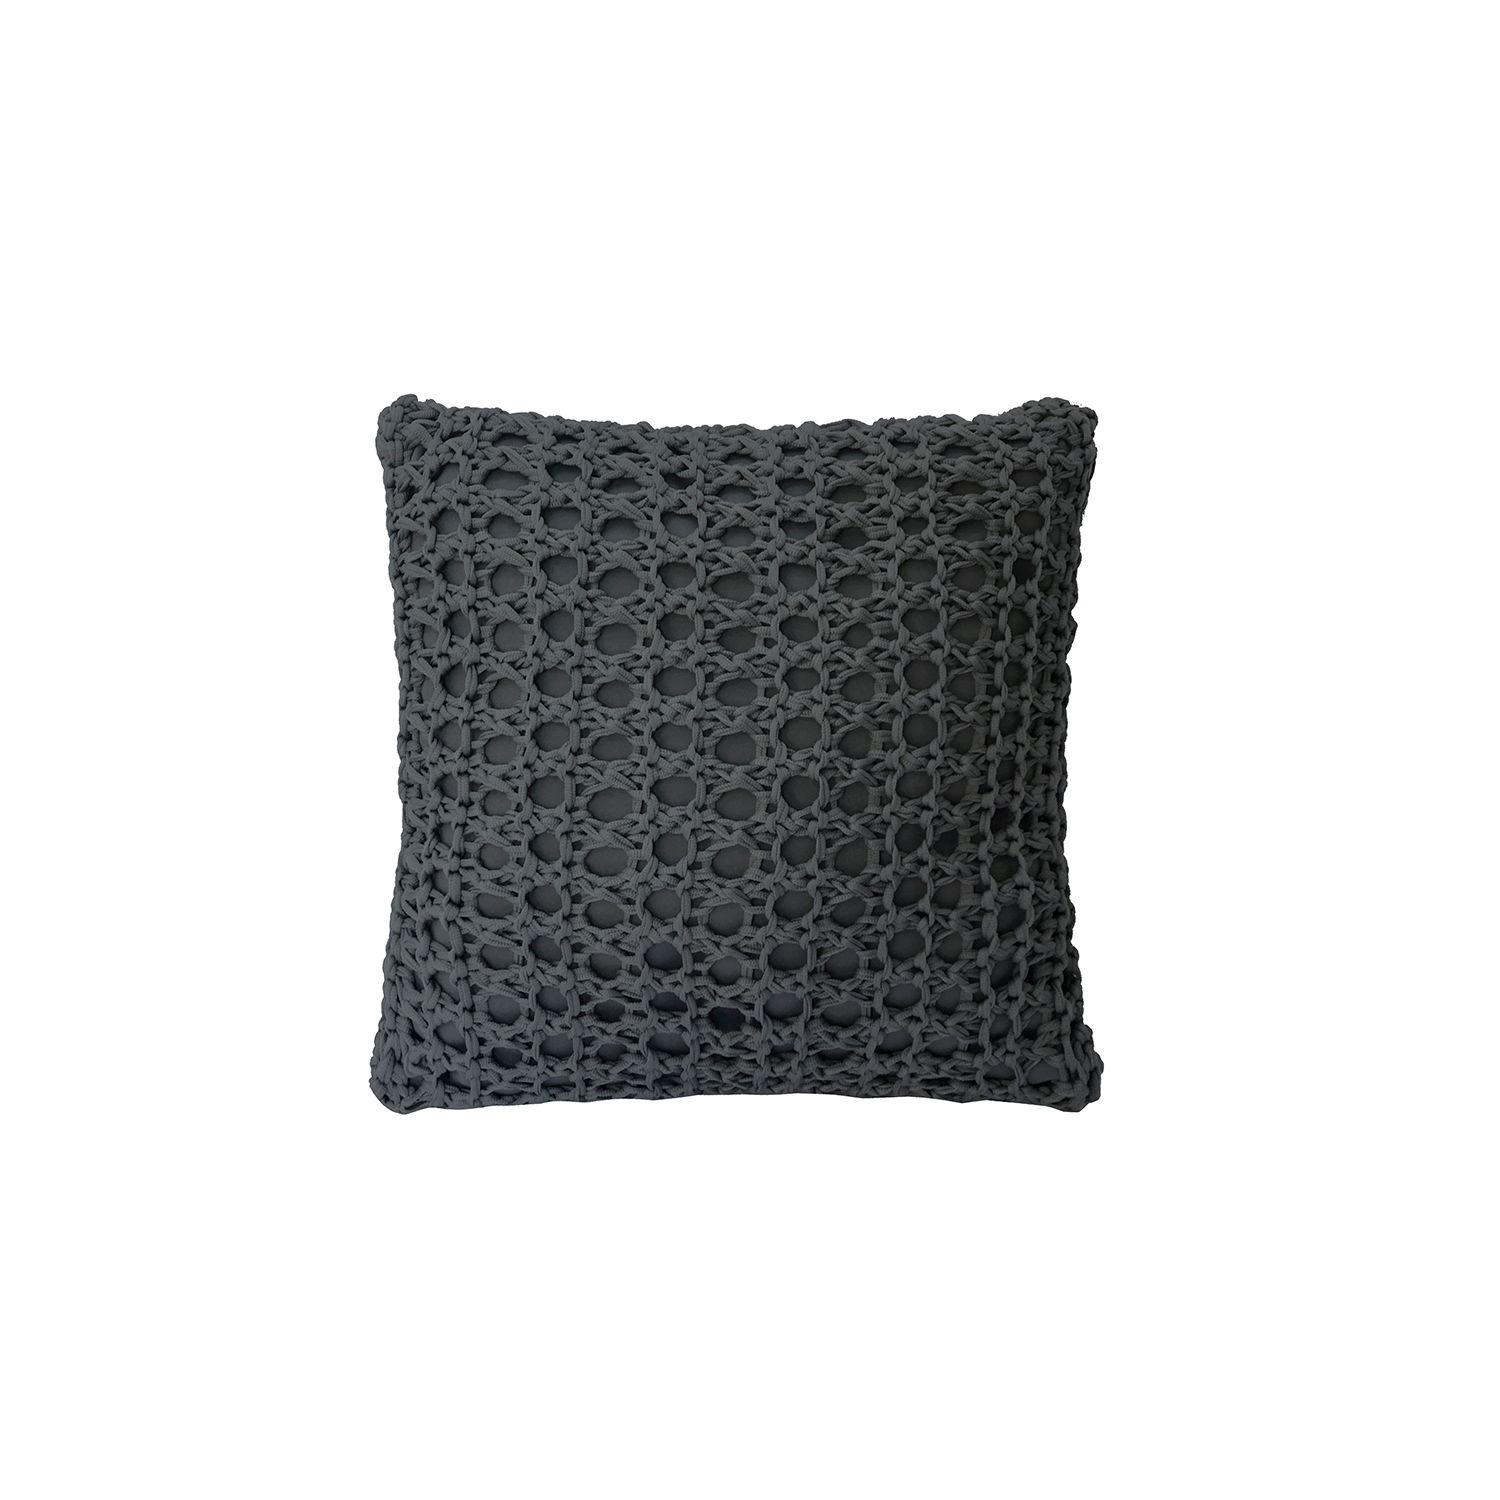 Pescador Neo Cushion Square - The Pescador Neo Cushion is carefully knitted within a trained community of women that found in their craft a way to provide for their families. The outdoor collection is made with synthetic fibres, resistant to weather exposure. The use of neoprene brings comfort and technology to the cushions.  The front panel is in neoprene combined with hand woven nautical cord, made in Brazil.  The inner cushion is in Hollow Fibre, made in the UK.  Please enquire for more information and see colour chart for reference.  | Matter of Stuff